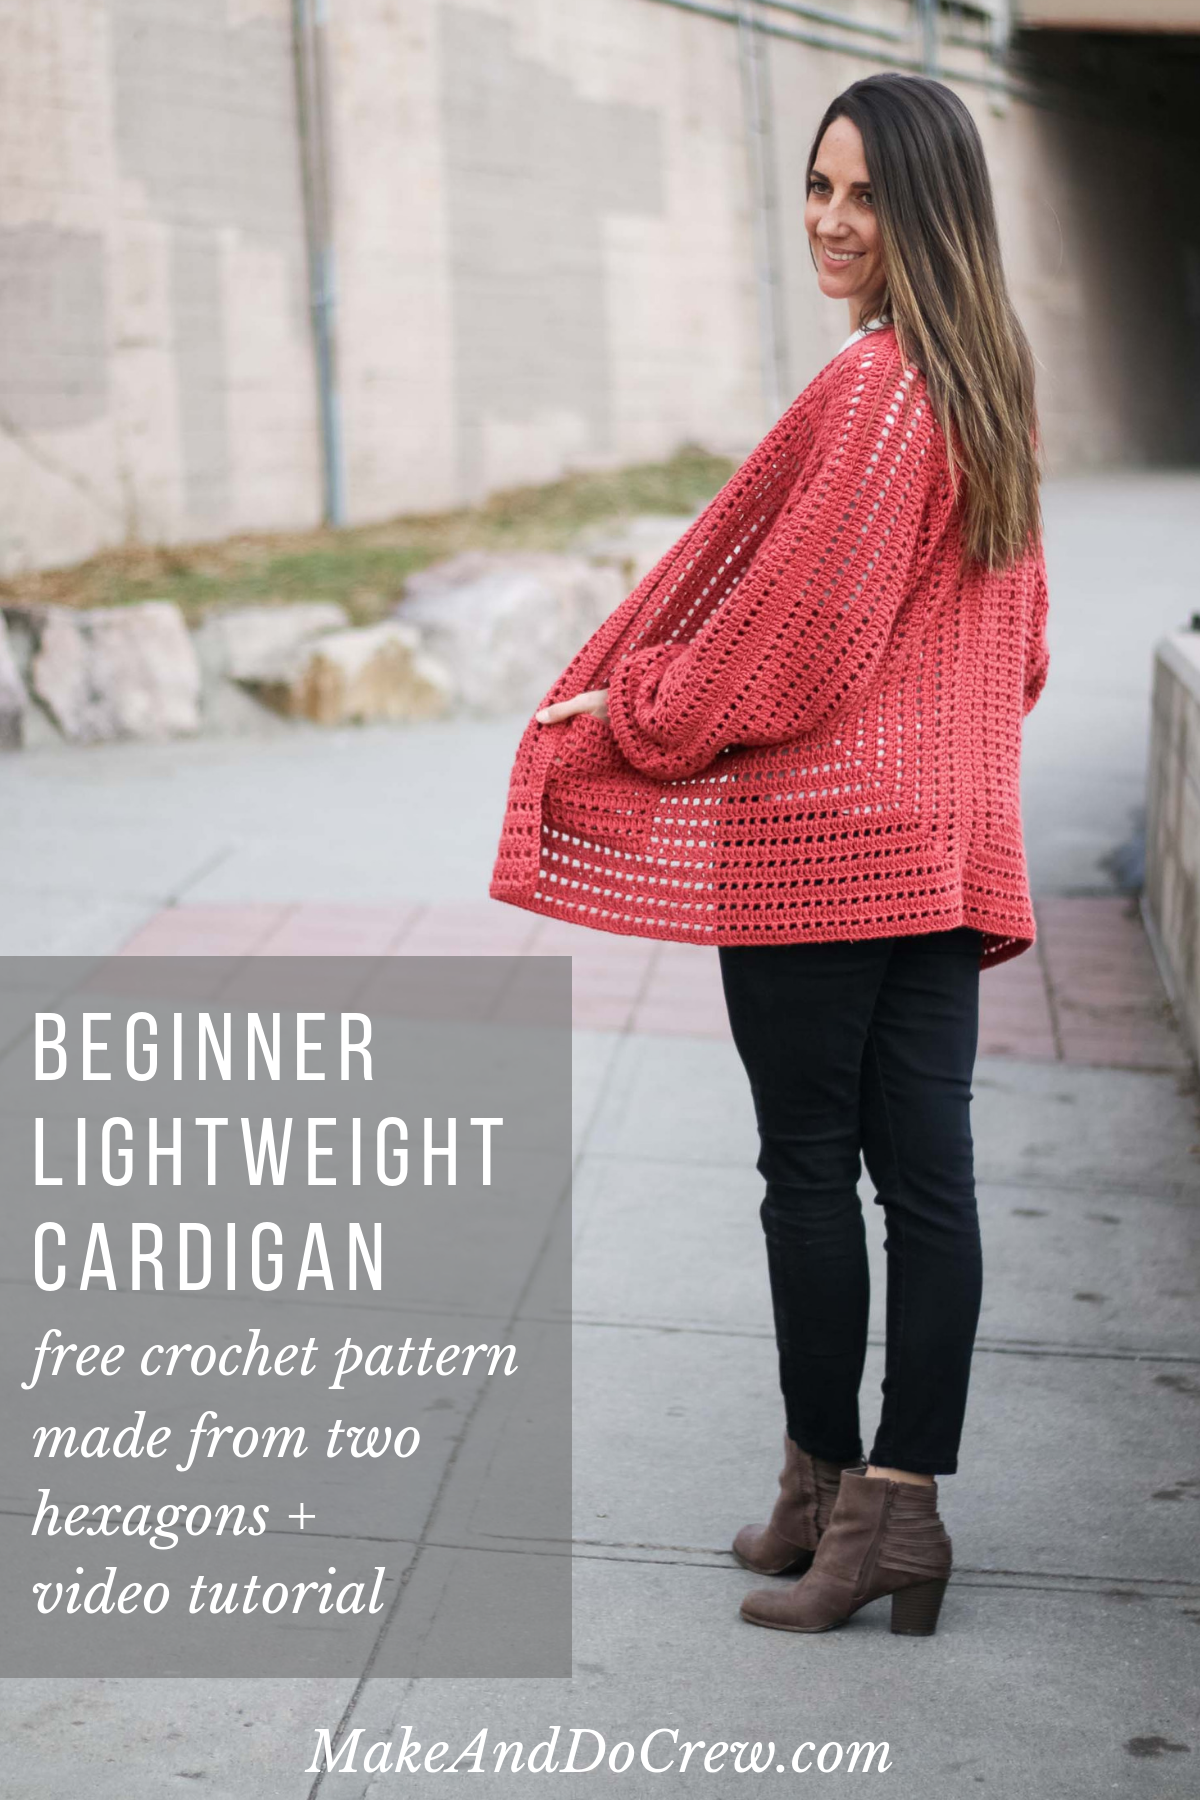 Free Crochet Cardigan Pattern - Made From Two Hexagons